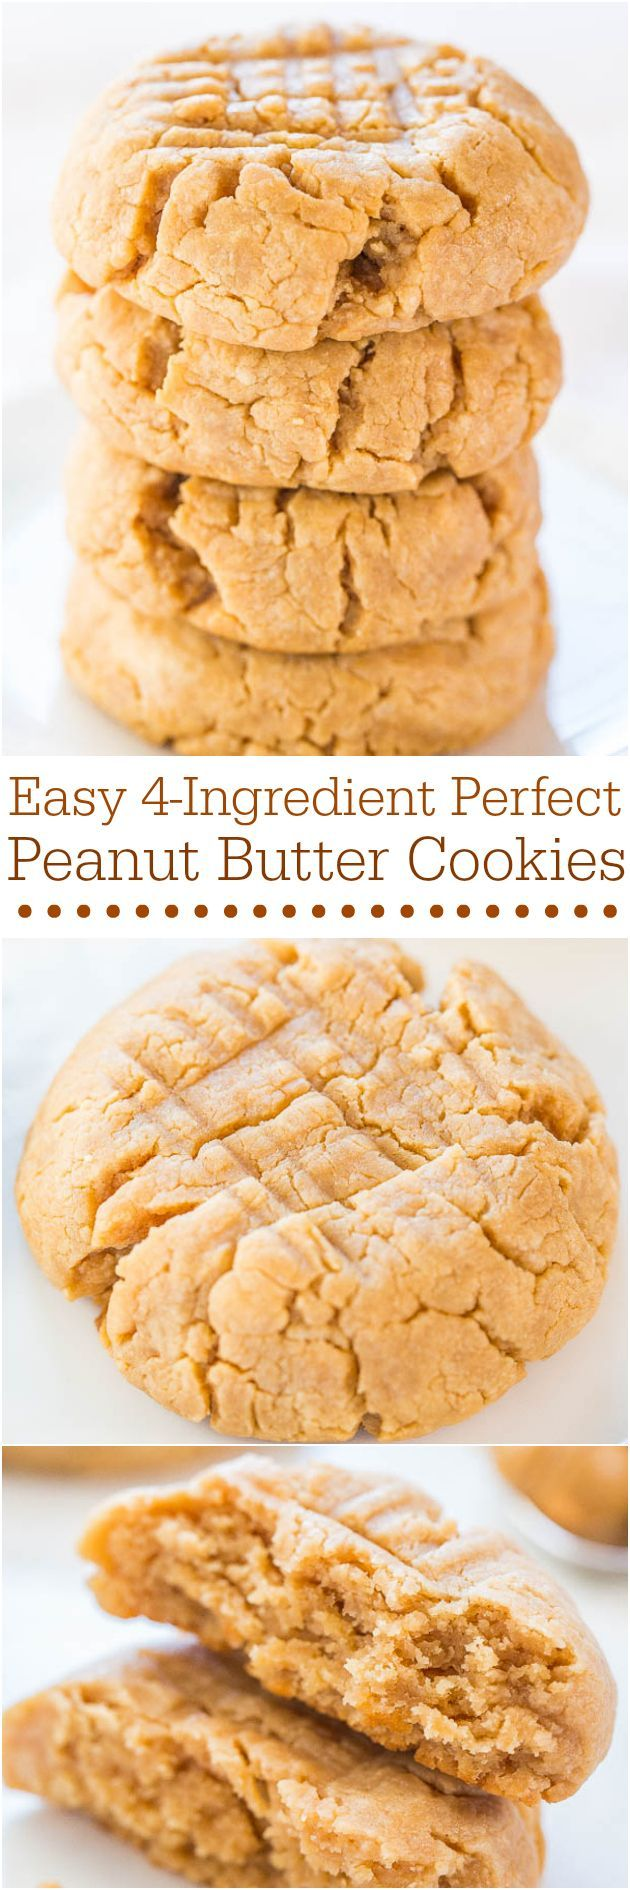 Cookies to   Peanut Peanuts uk and Butter us shoes Peanut Easy Peanut Butter Butter   Ingredient Perfect Cookies